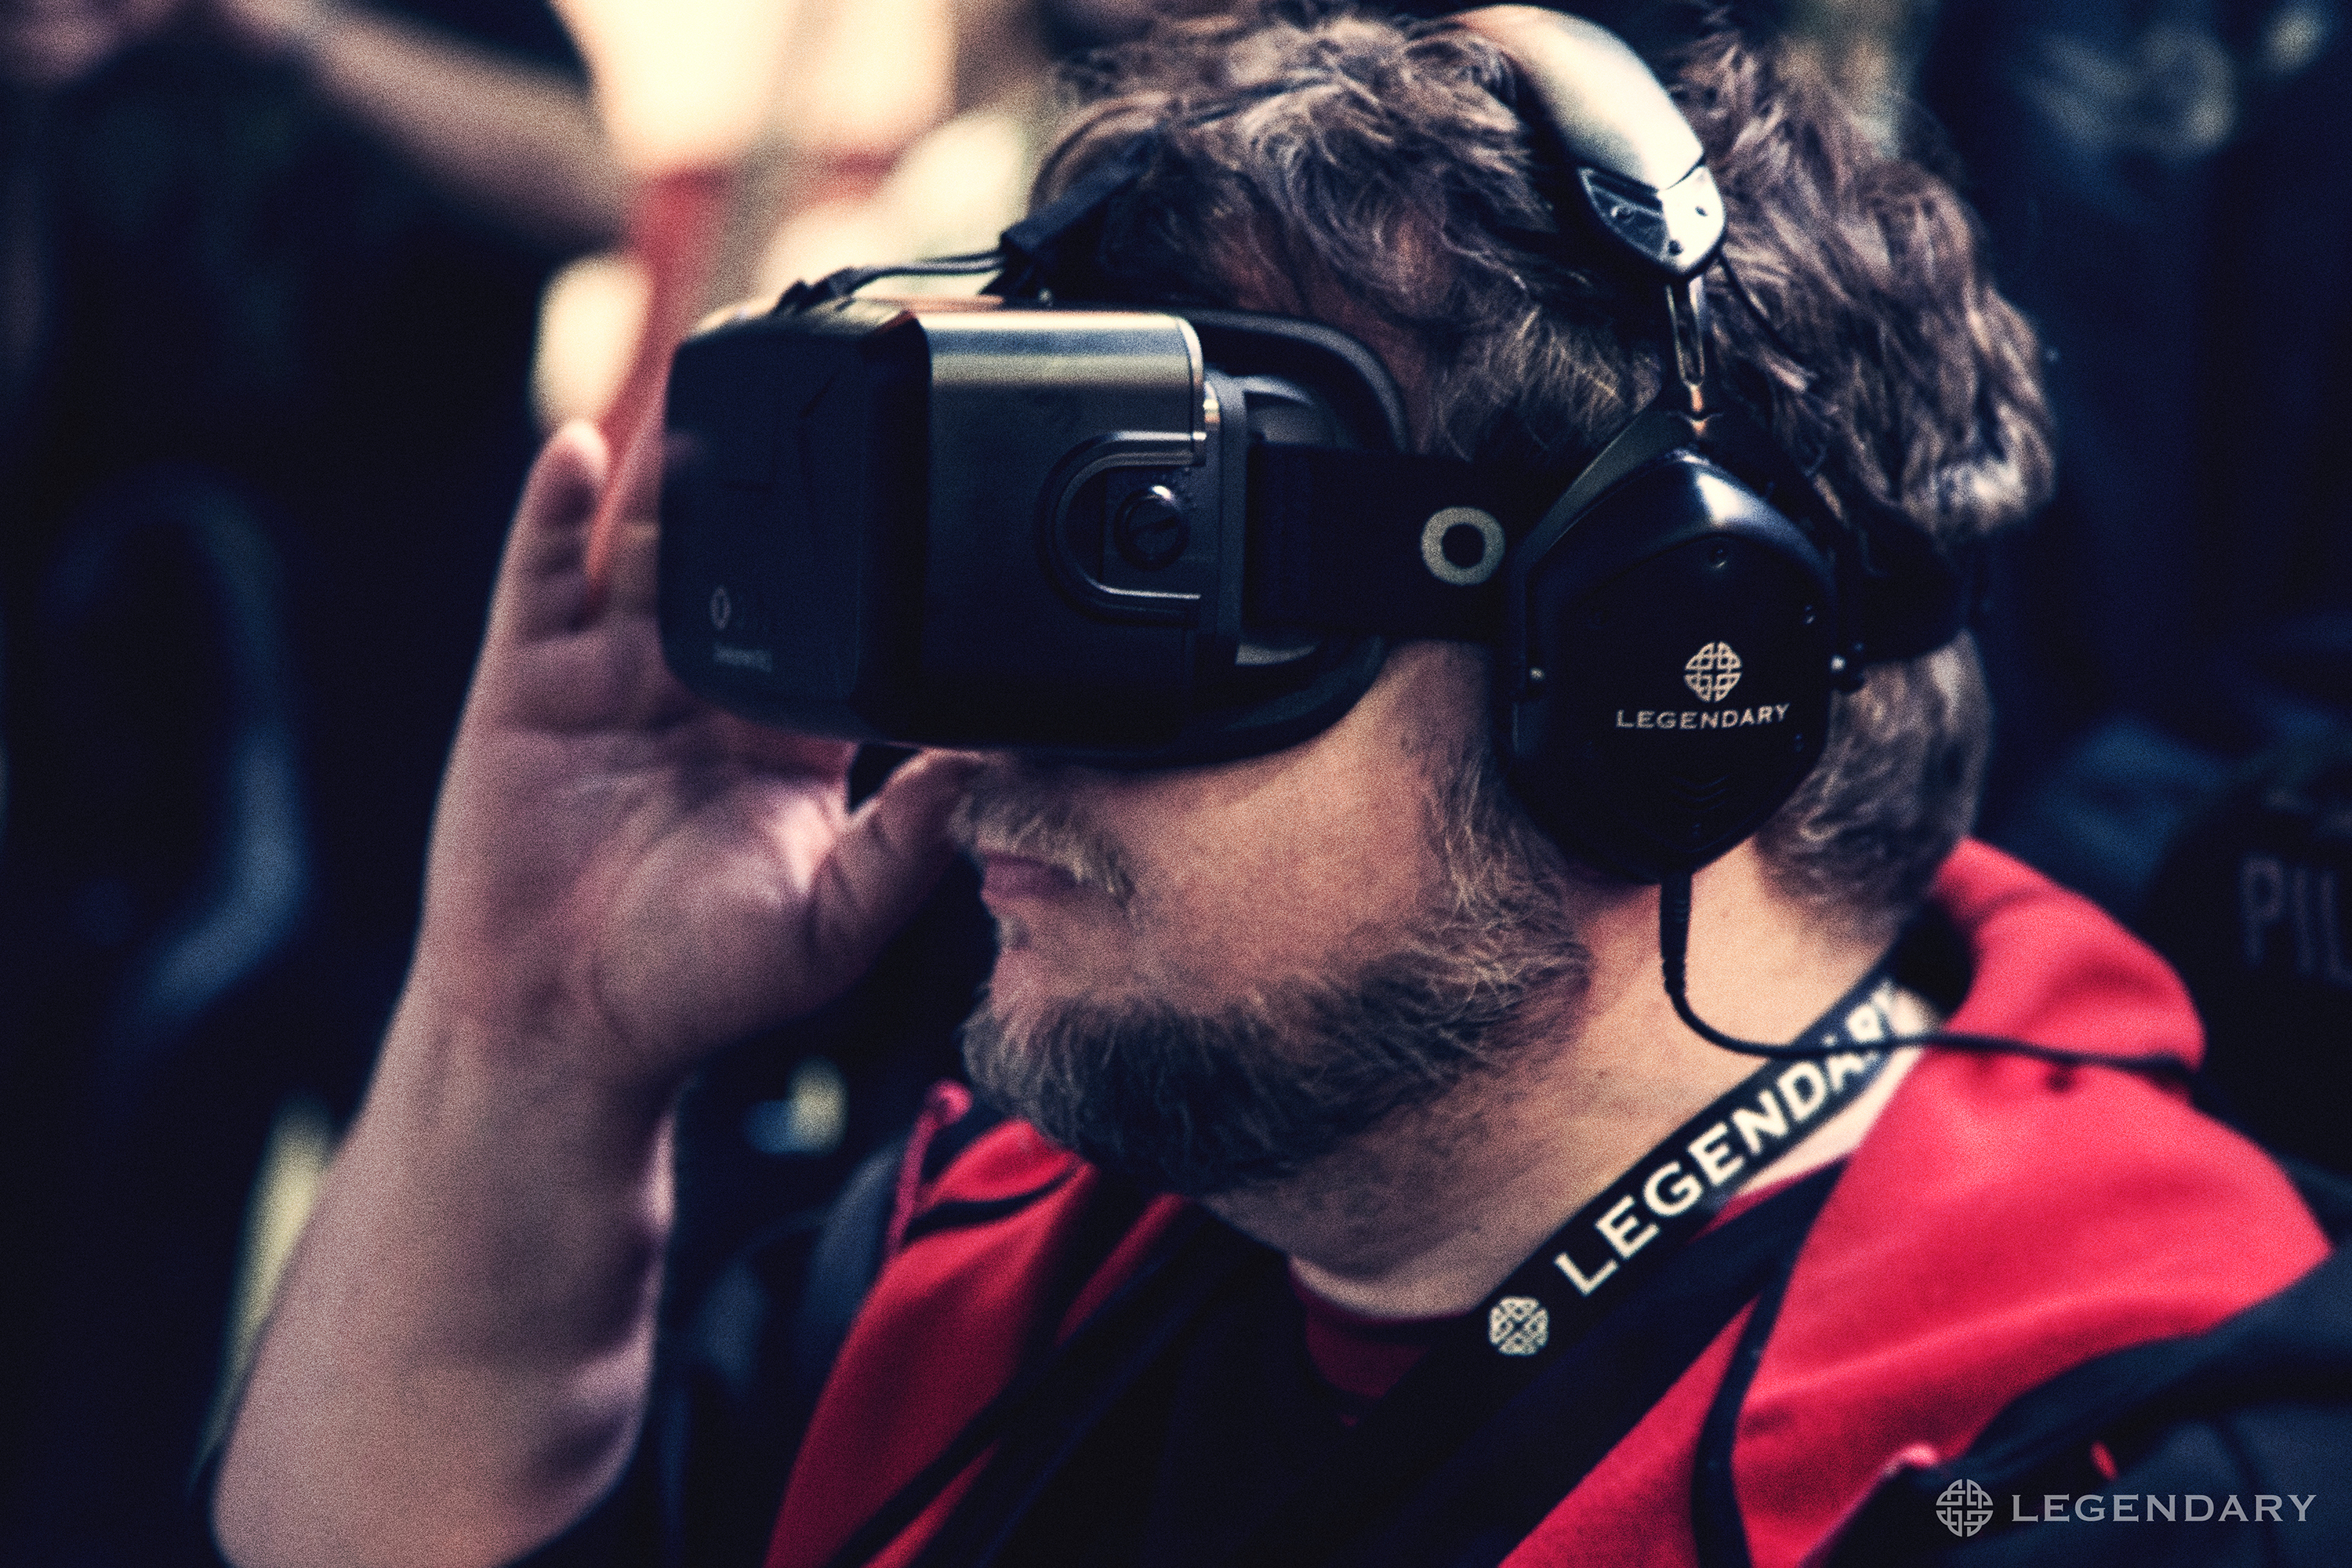 Director Guillermo del Toro already has three VR experiences under his belt.